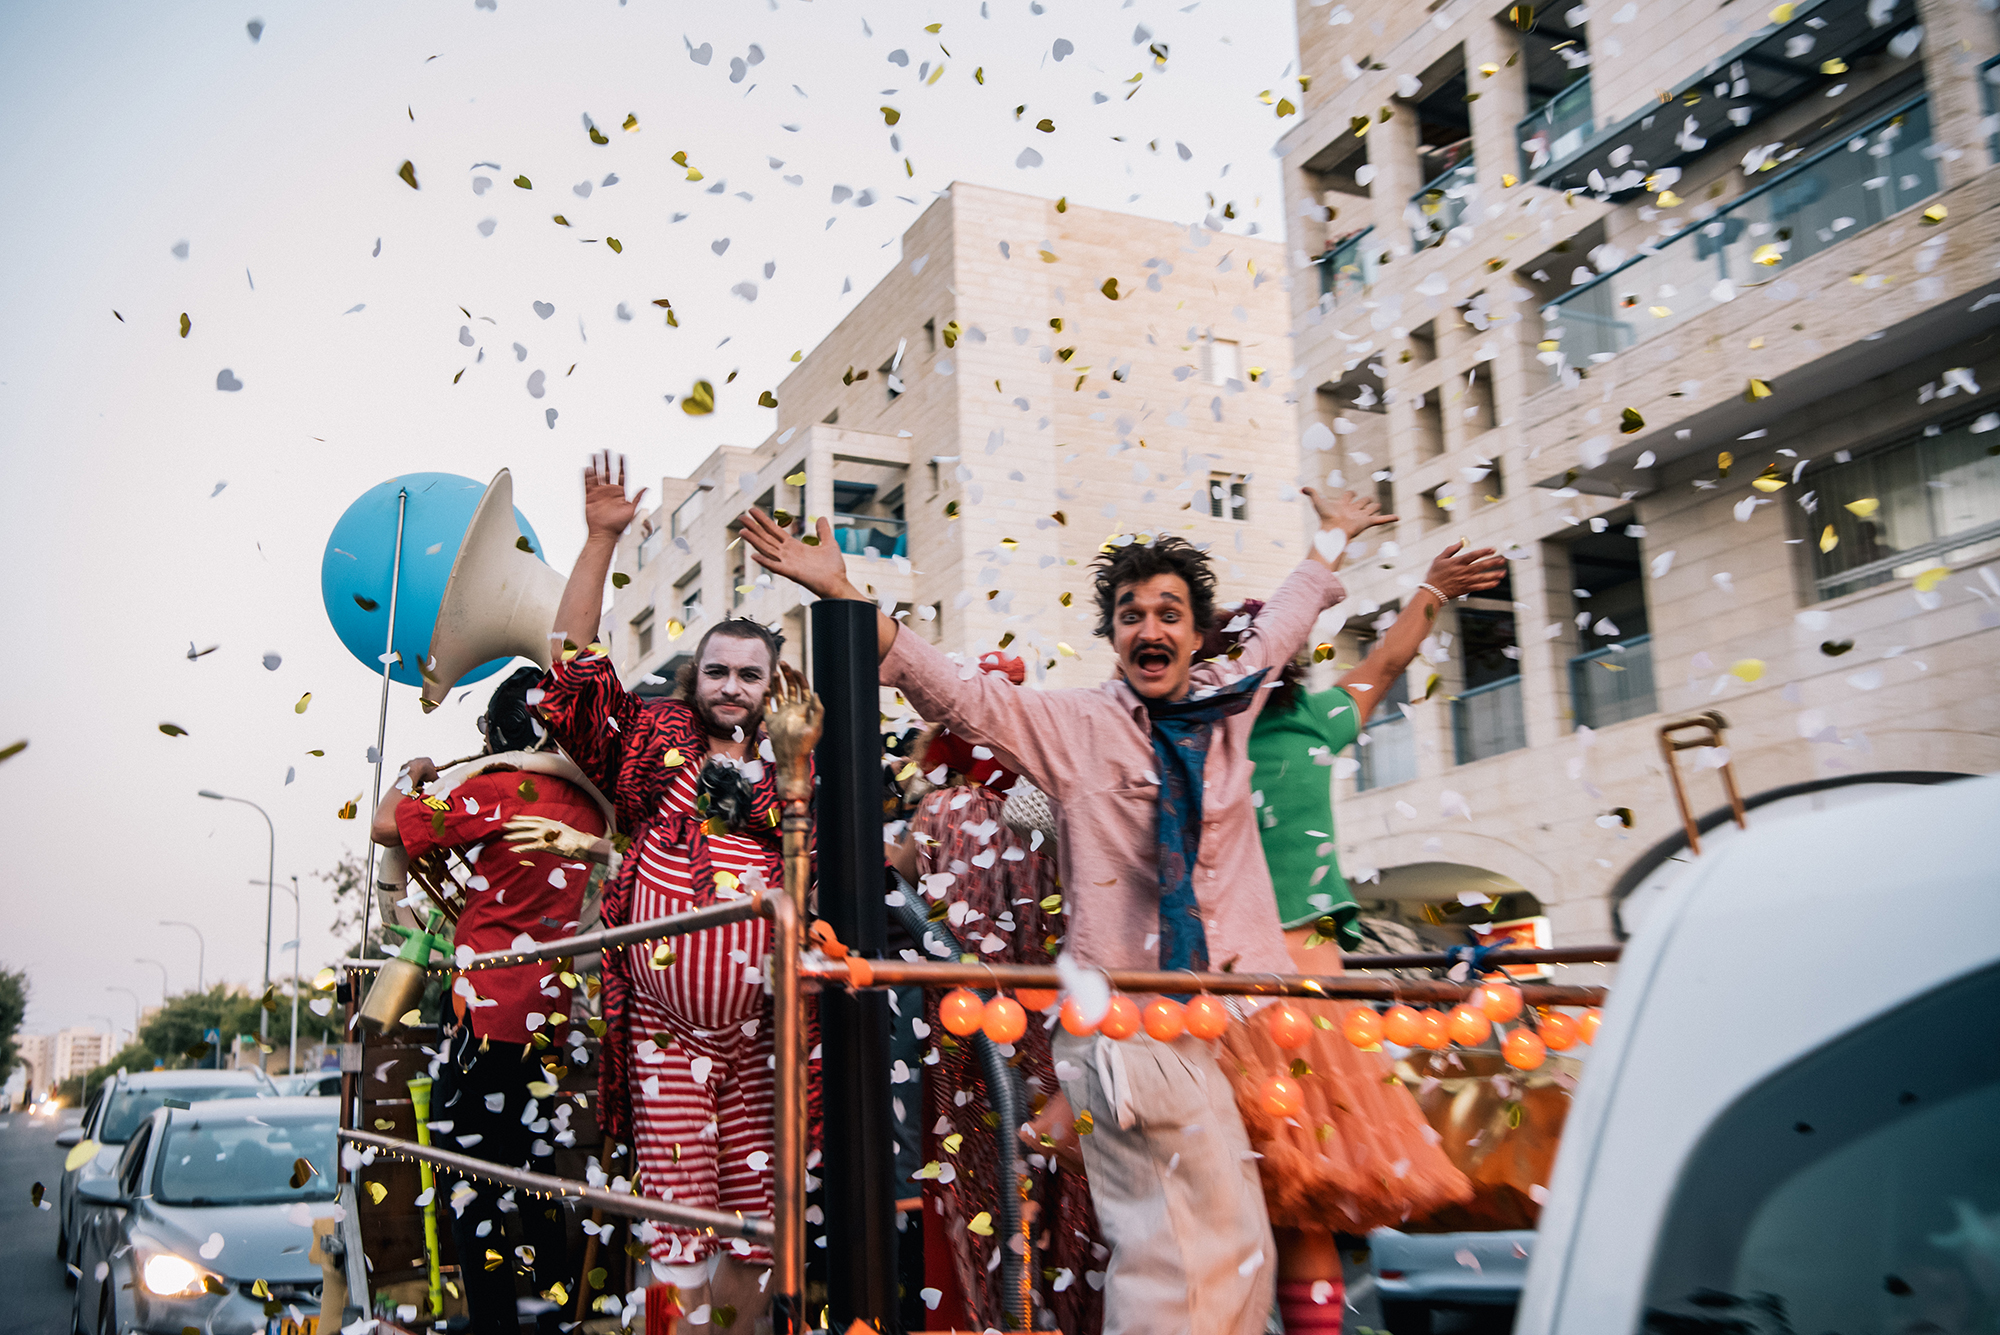 Arik Shraga photographs the DAVAI Theater group as they move down the street in their trailer as confetti falls from the sky